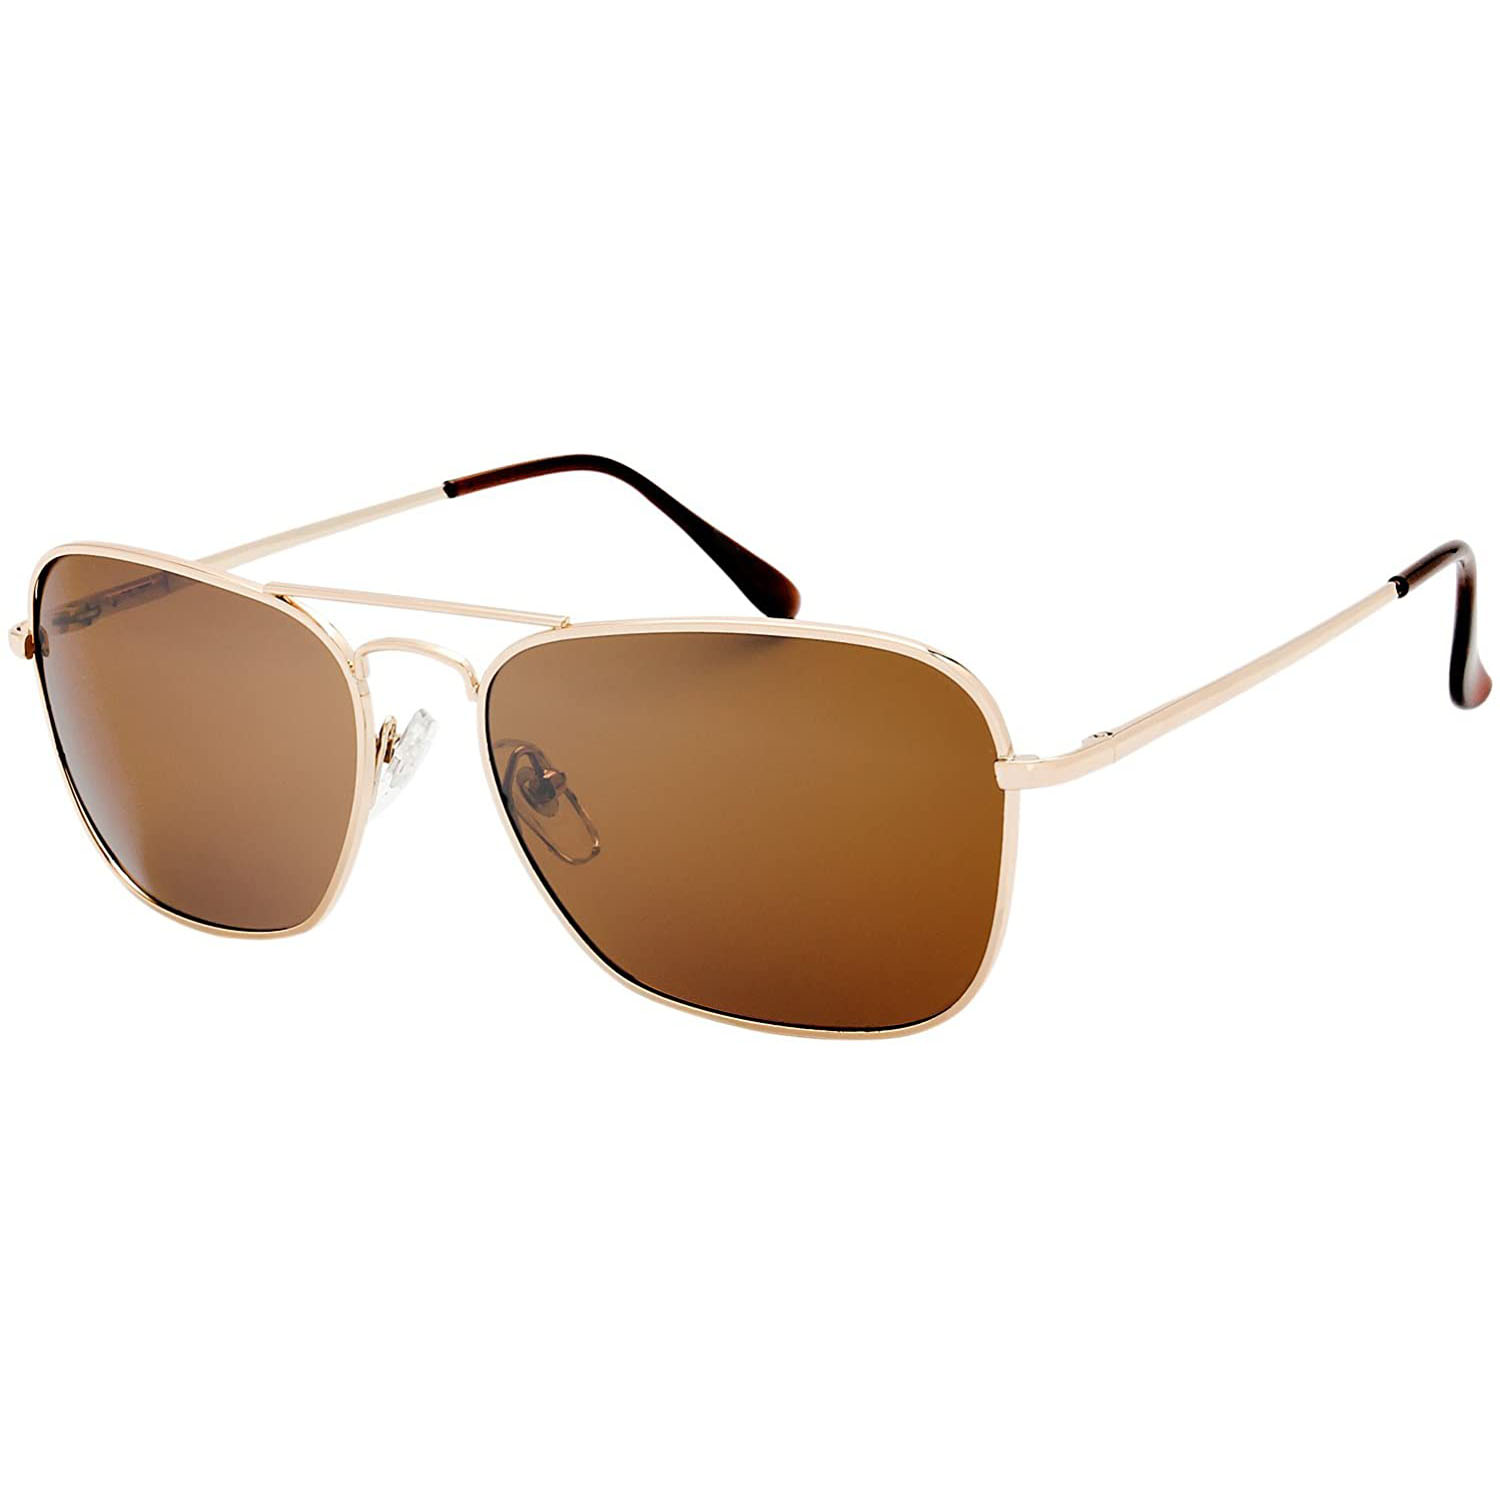 The Fresh Classic Rectangular Sunglasses